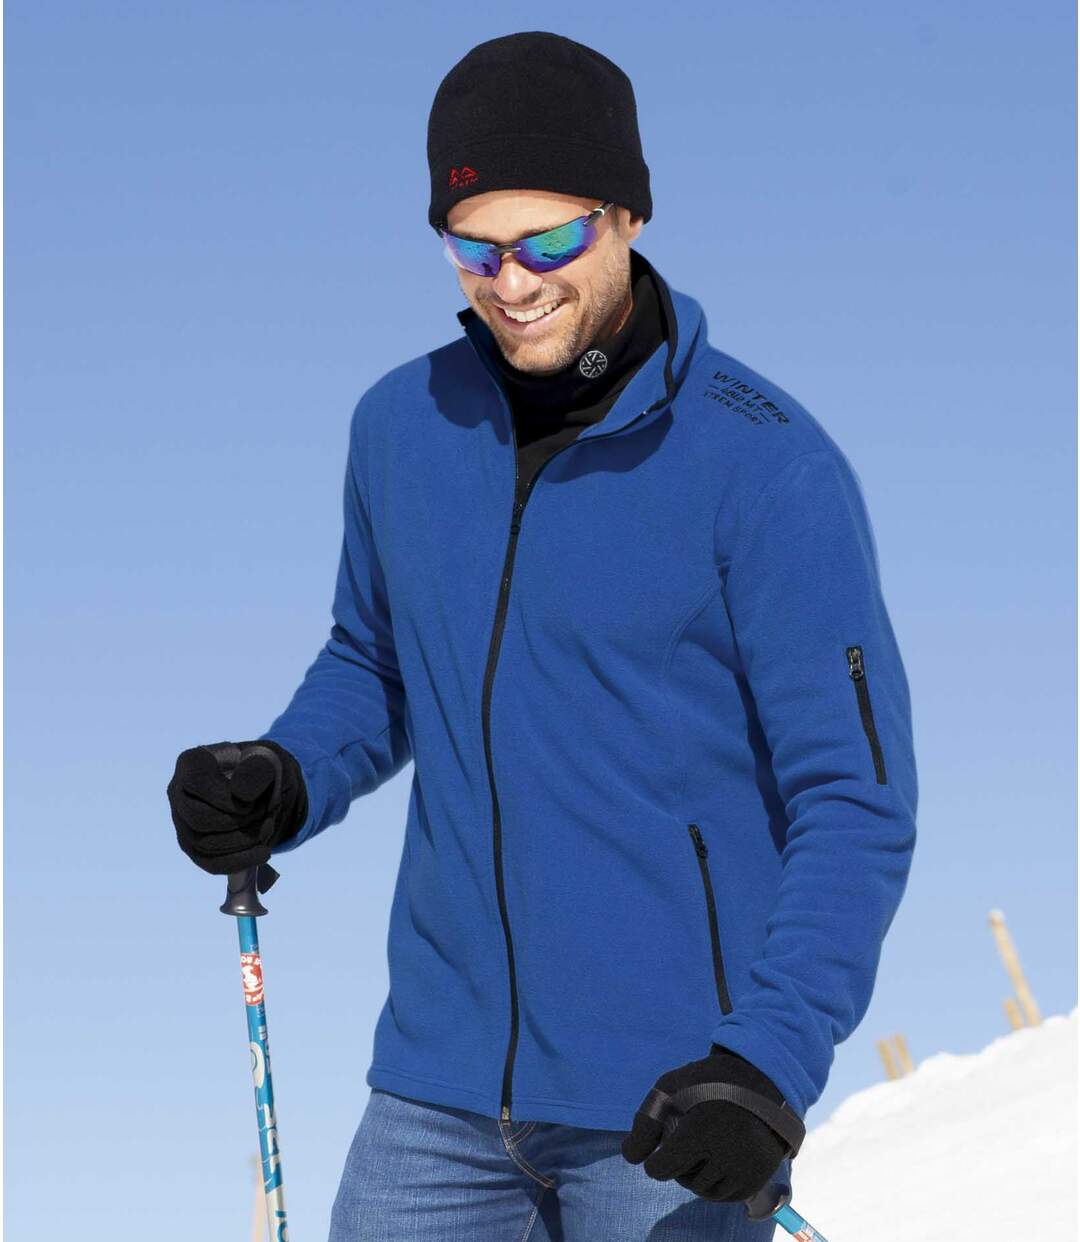 Pack of 2 Men's Outdoor  Microfleece Jackets - Blue and Black